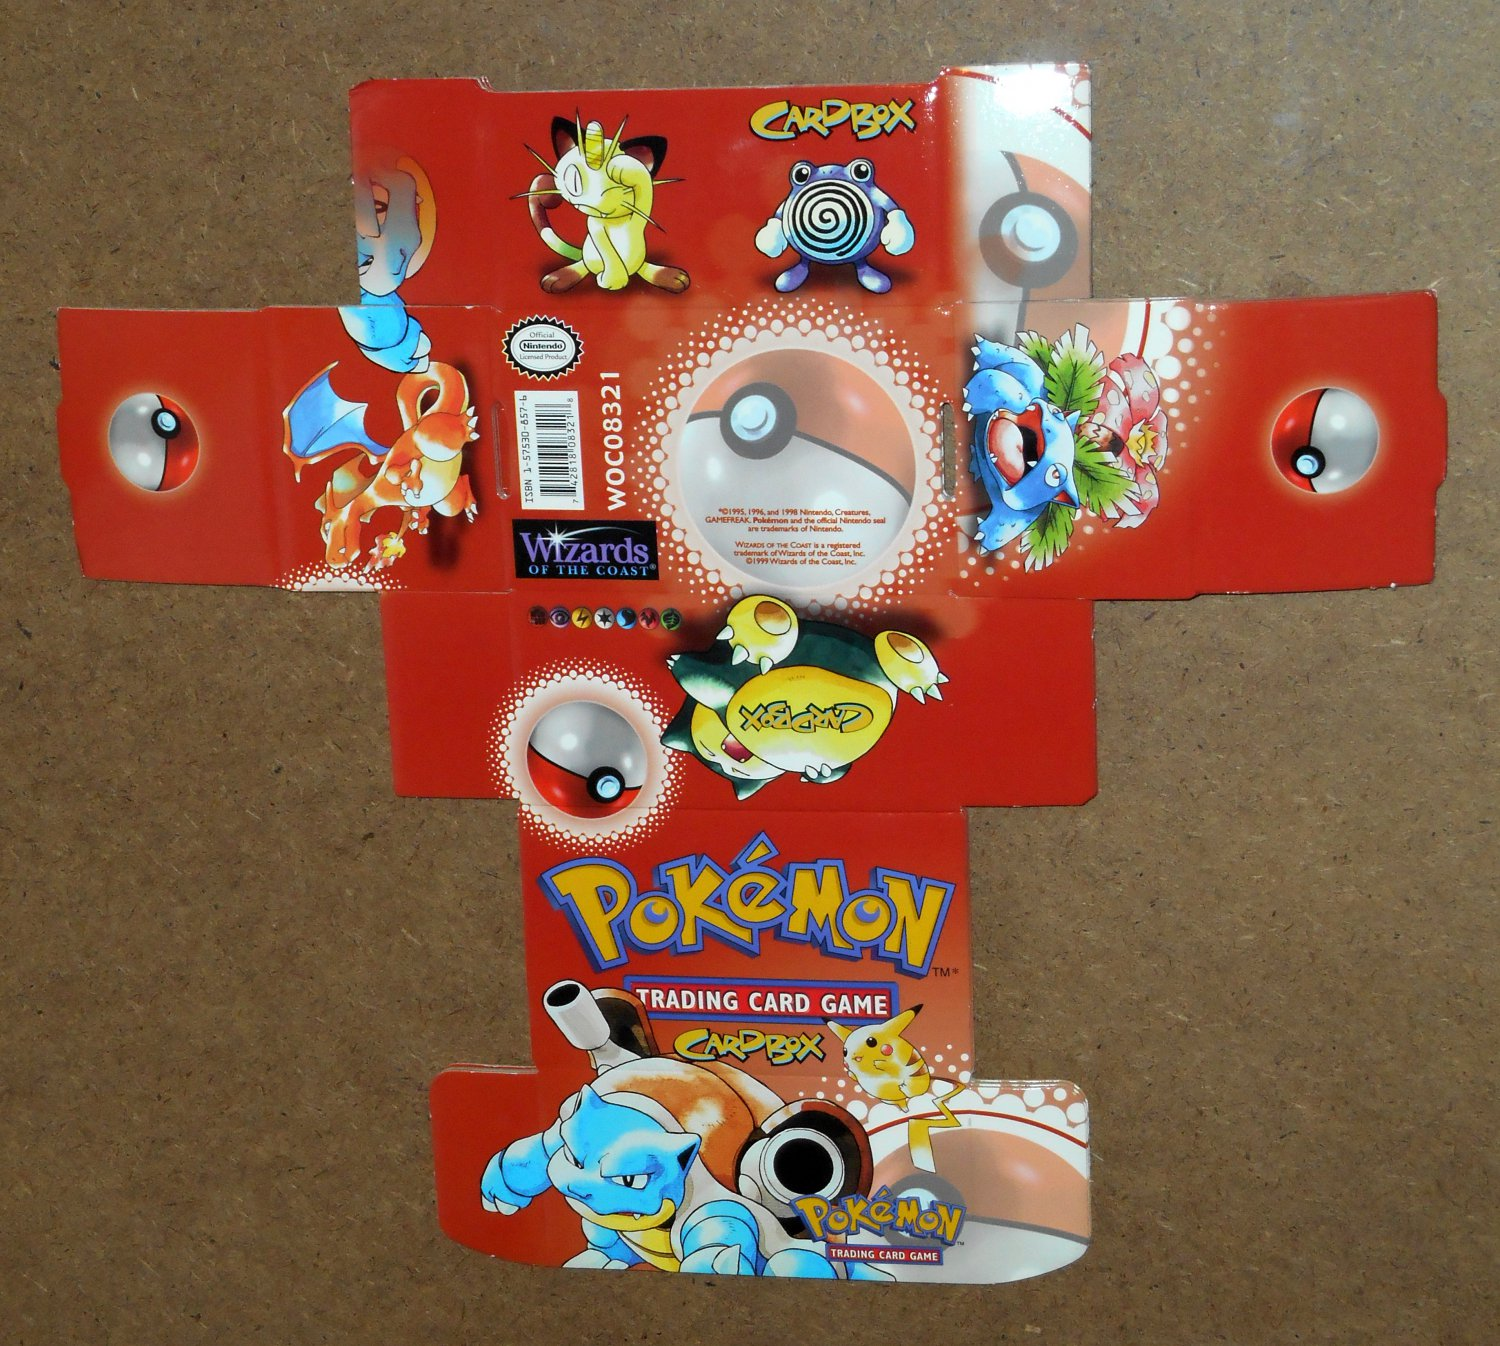 Pokemon Lot Cardbox Card Box Wizards of the Coast Cracker Jack Prize Sticker Tattoos Nintendo